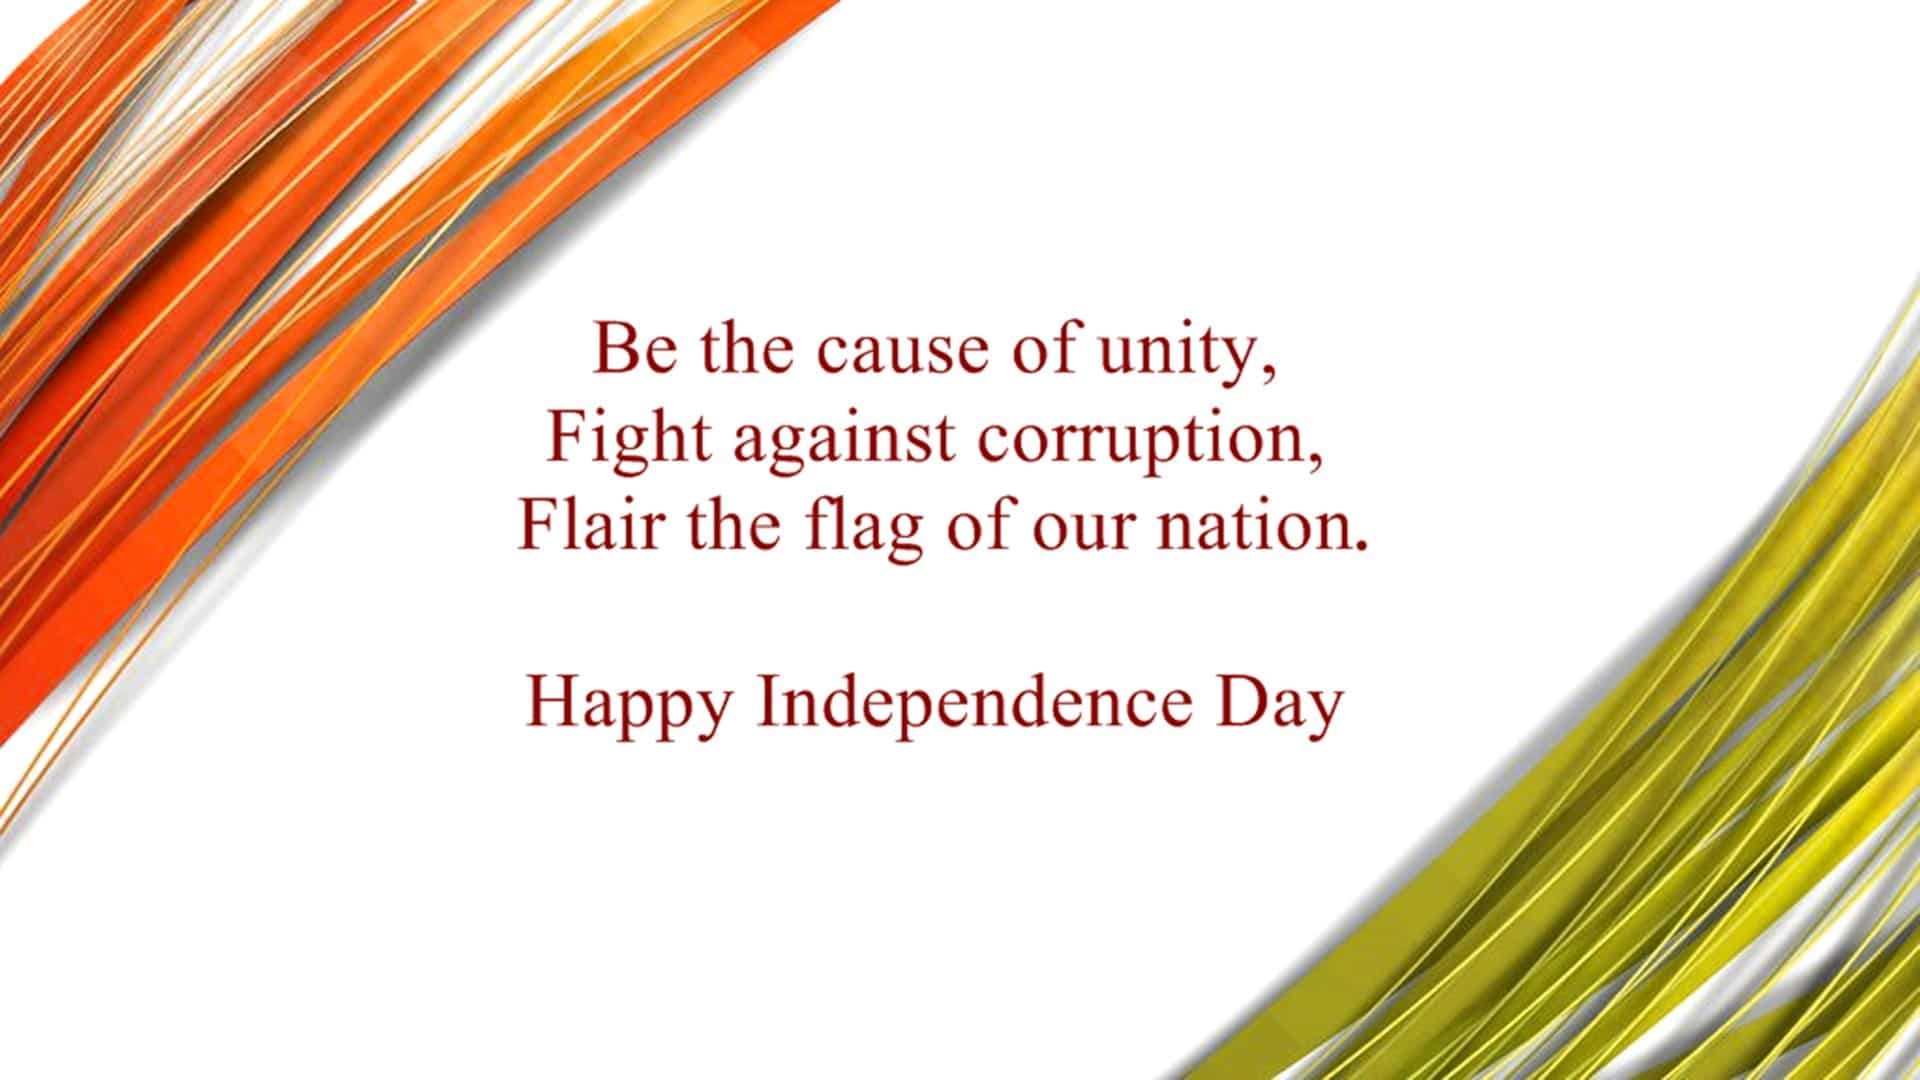 1920x1080 15th August Independence Day Republic Indian Flag Images; Independence Day  Beautiful Quotes And Flag Hd Wallpapers